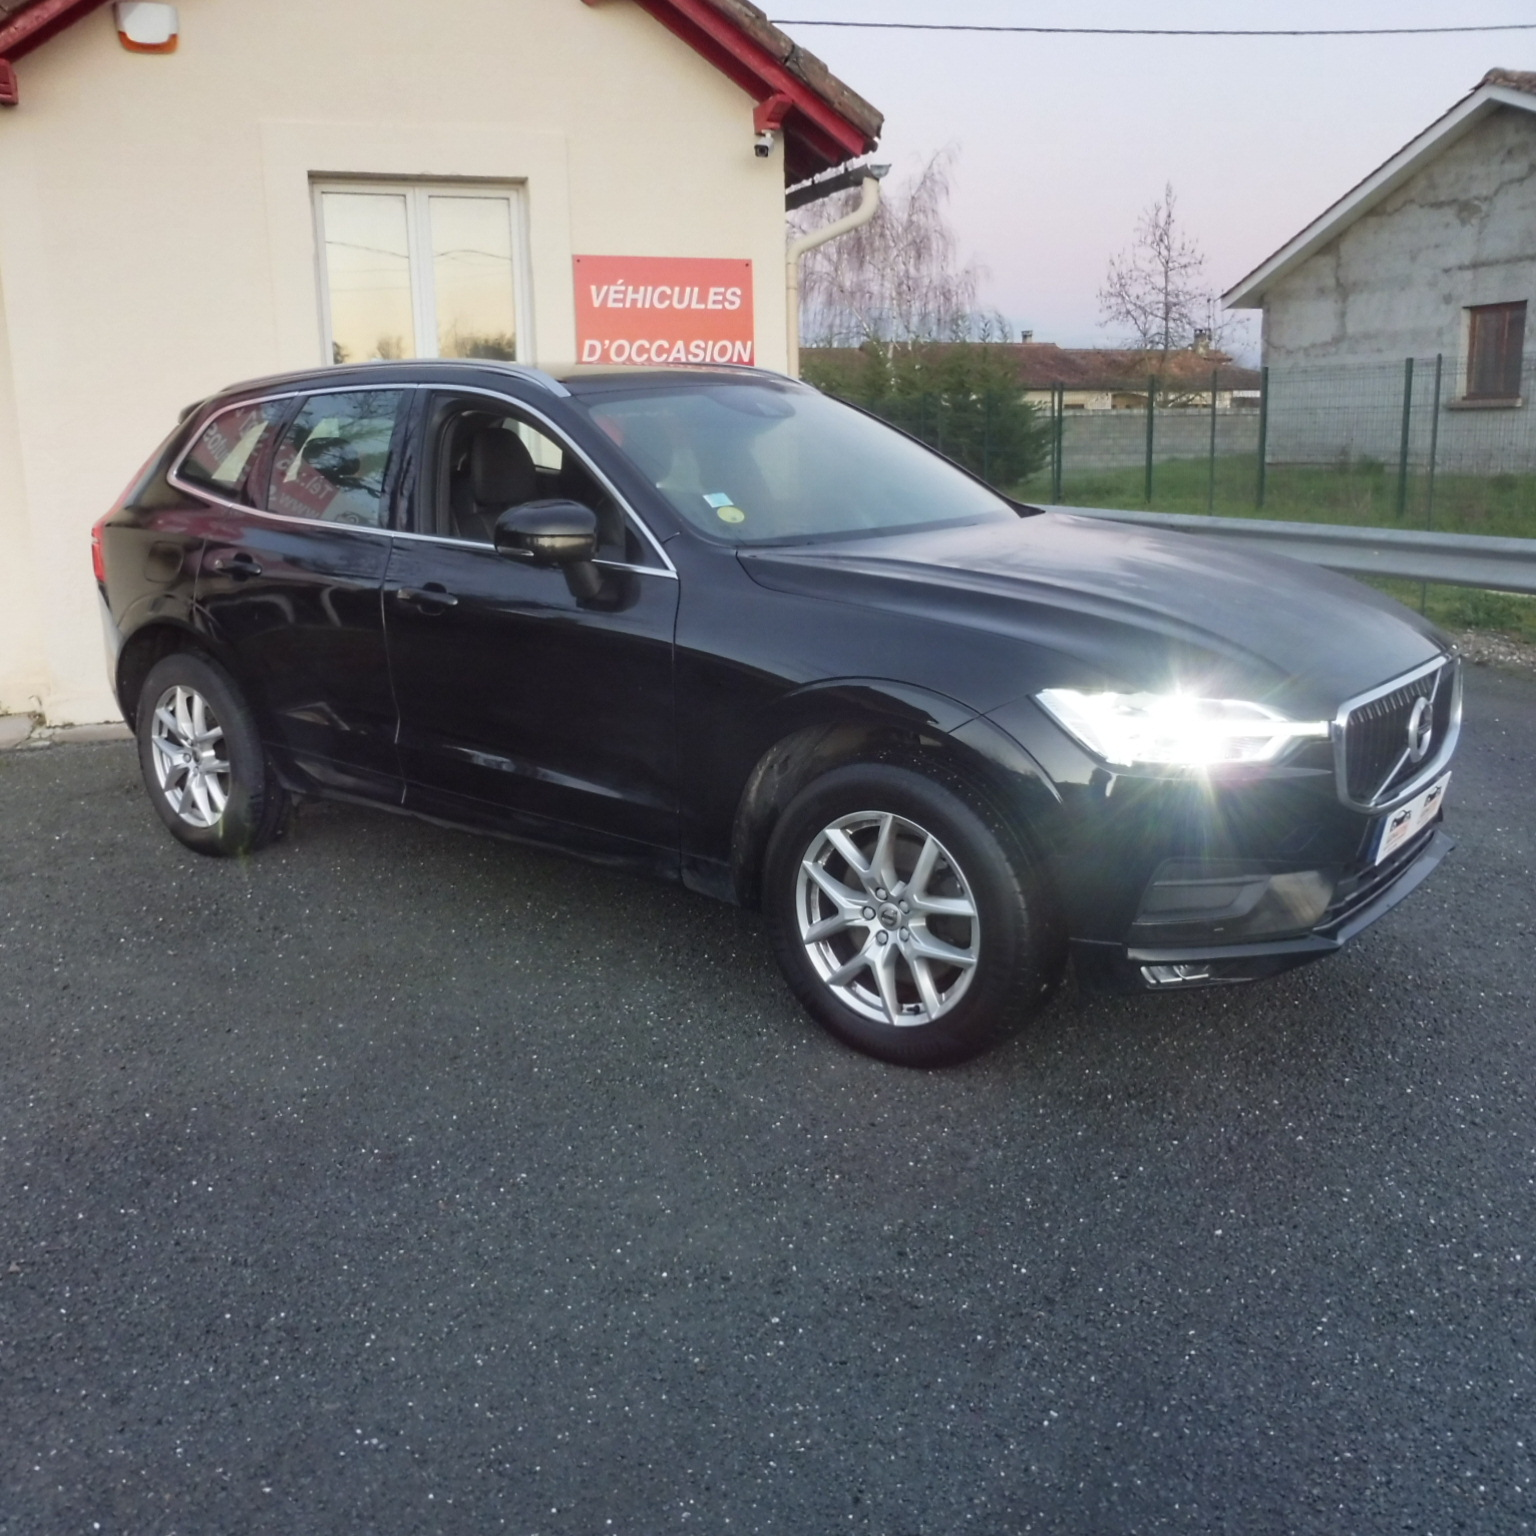 VOLVO XC60 AWD 190 ch AdBlue Geatronic 8 Business Executive +options